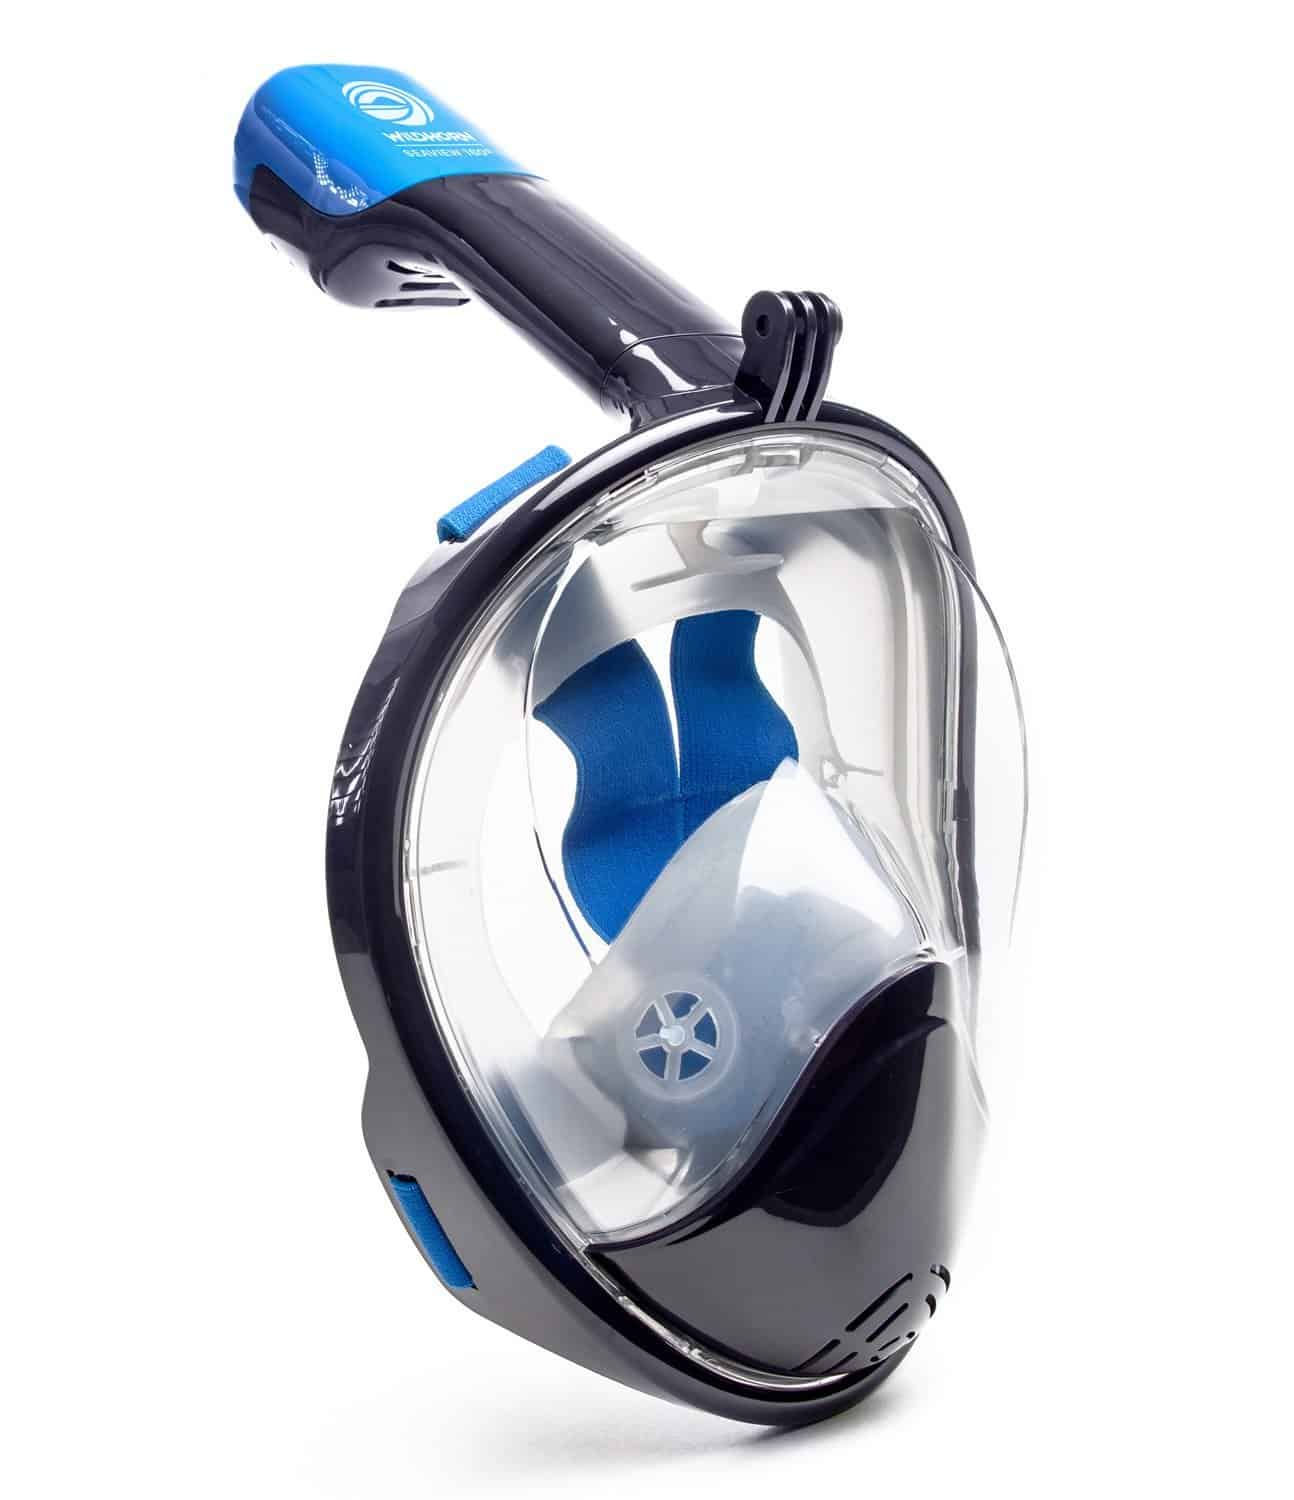 Seaview 180 Degree Full Face Snorkel Mask